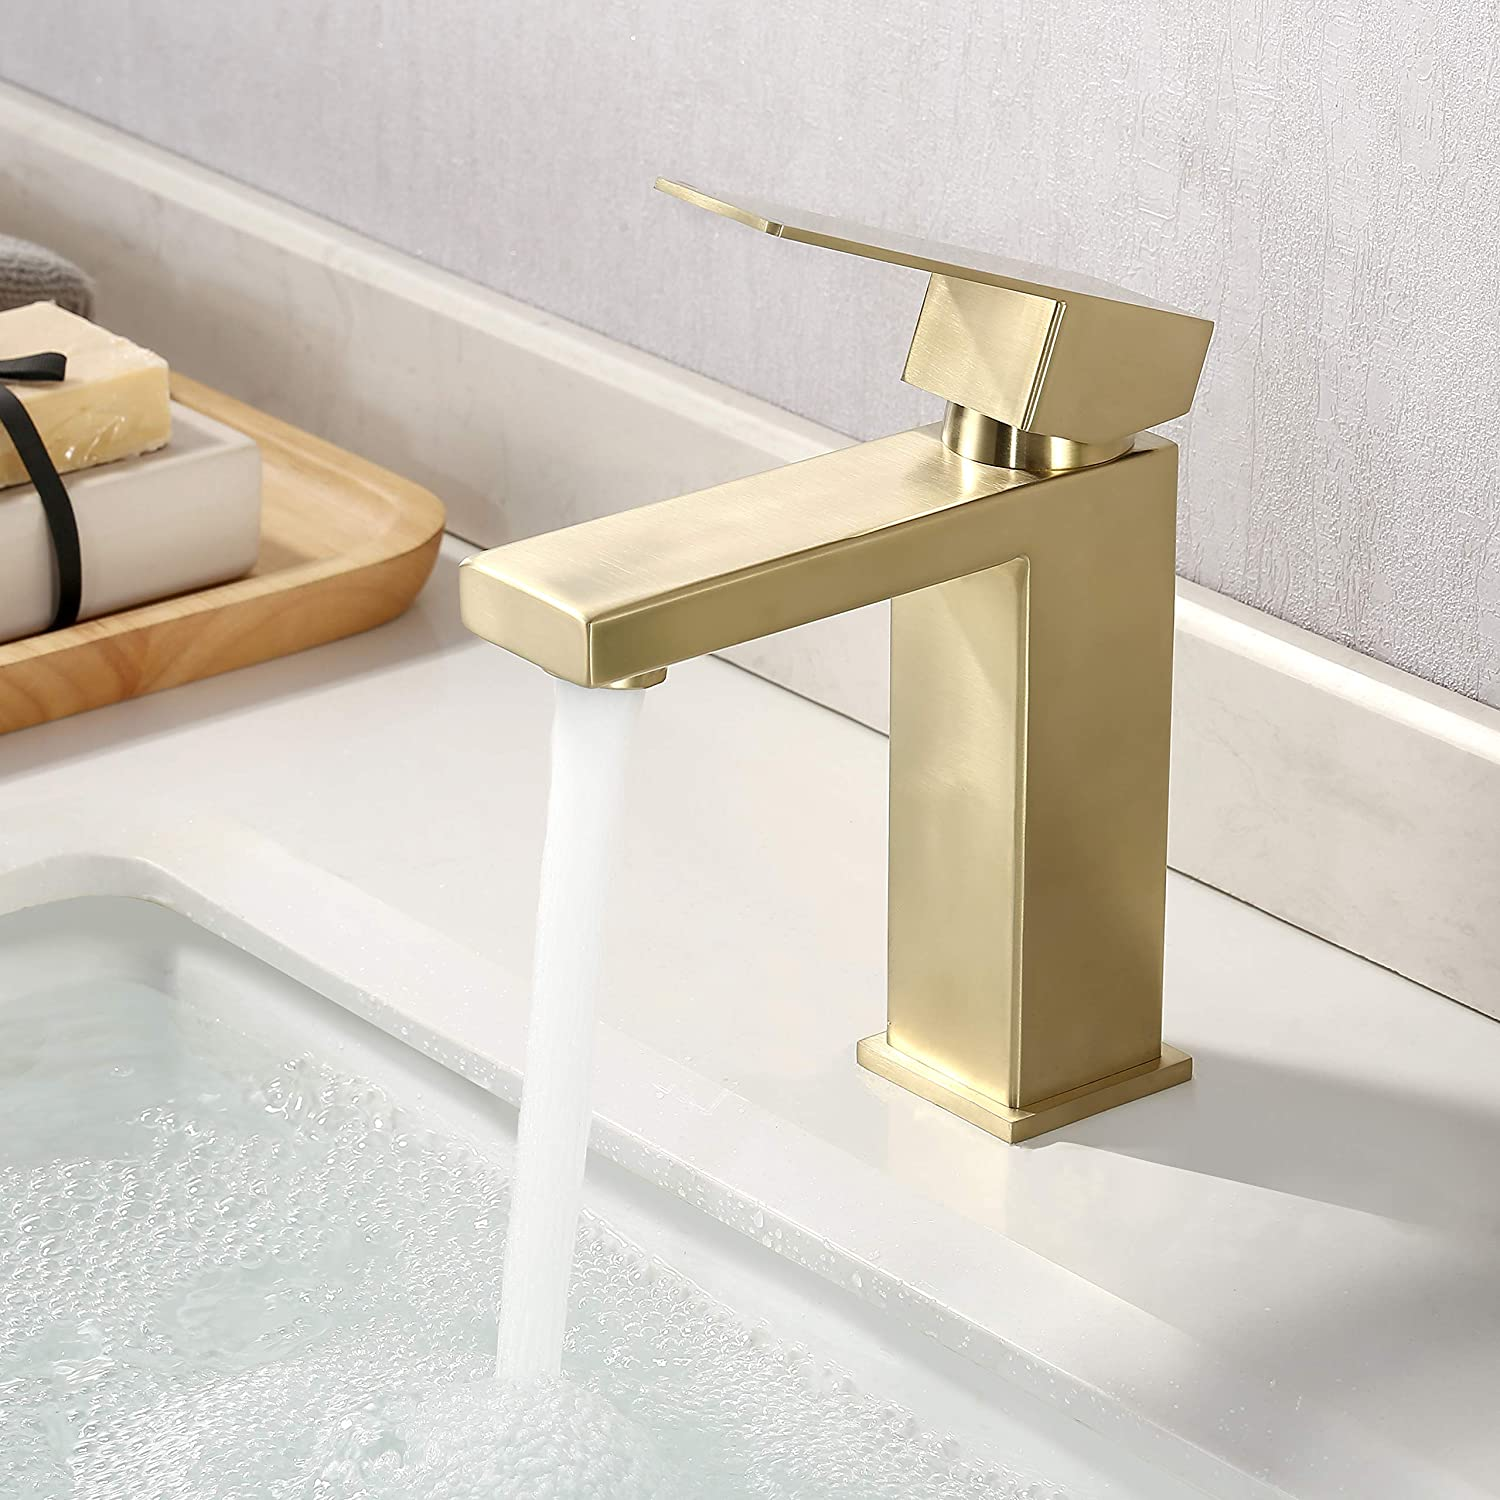 kes brushed gold bathroom faucet single hole modern vanity faucet single handle bathroom sink faucet stainless steel brushed brass finish l3156alf bz